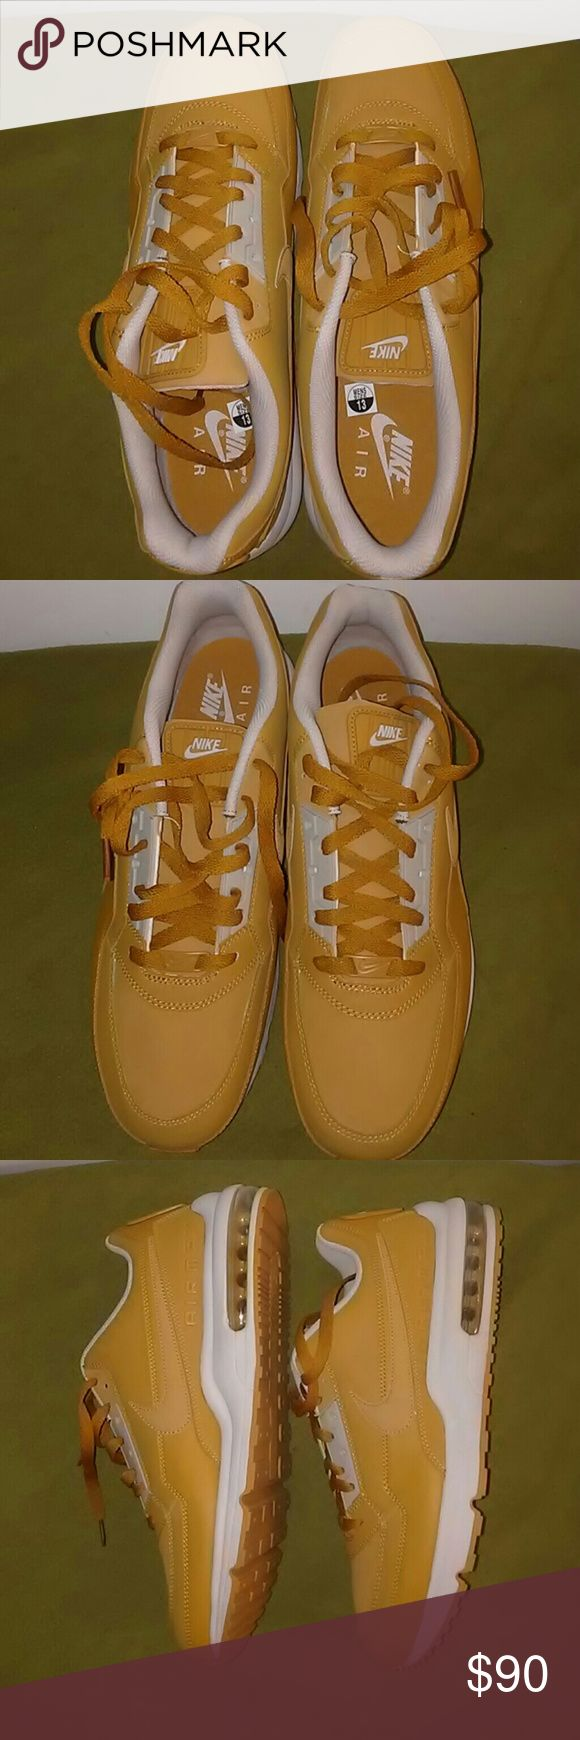 Nike Air max LTD Size 13 Nike Air max LTD Wheat color way Size 13 New- With out Box Classic shoe 100% authentic  Price negotiable Nike Shoes Sneakers